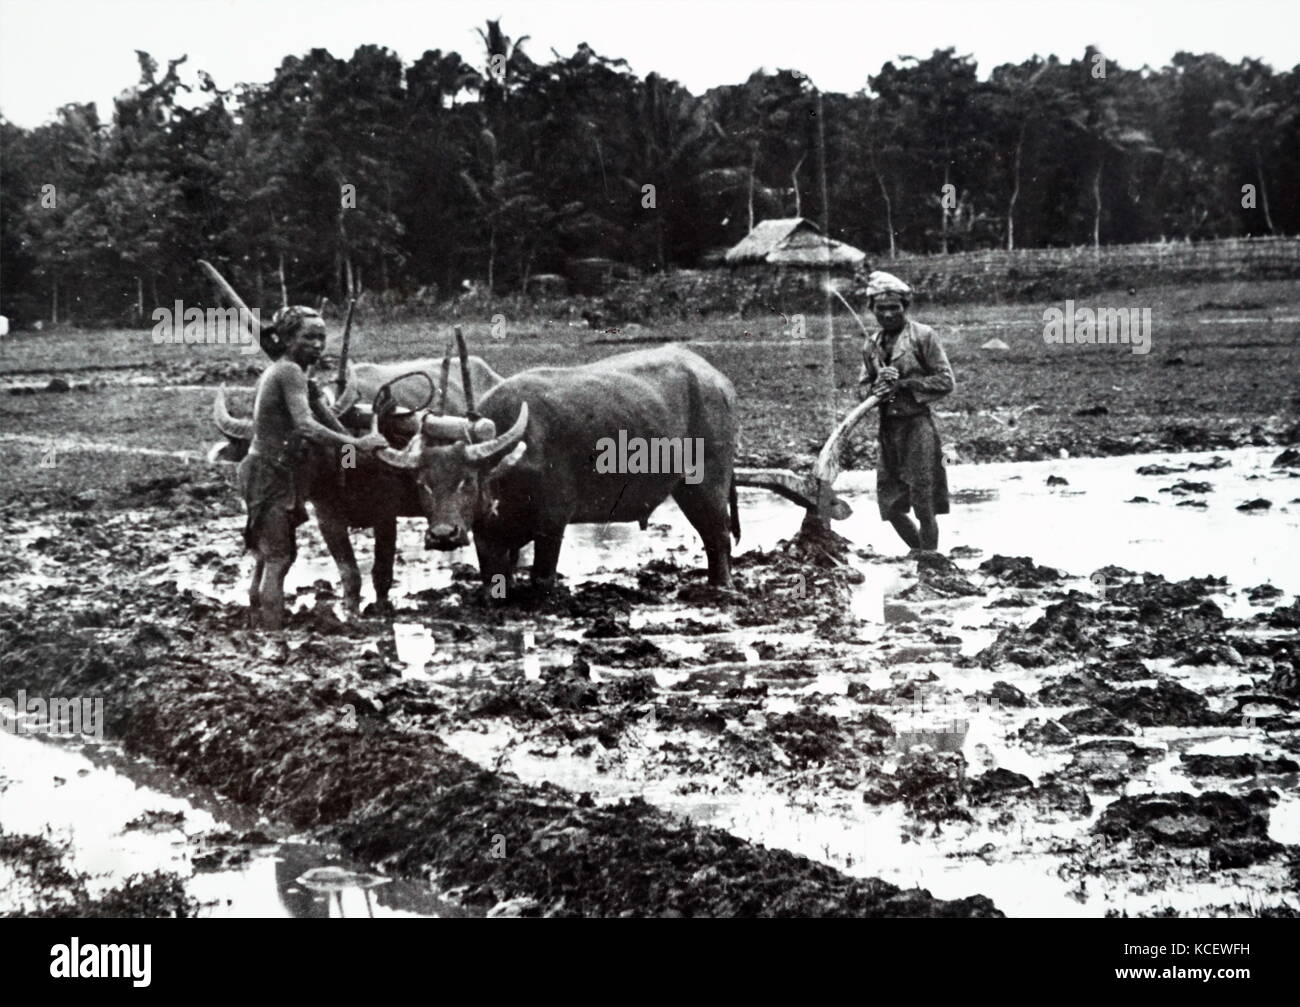 Photograph of farmers ploughing with bullocks and a wooden plough in Java, Indonesia. Dated 19th Century - Stock Image